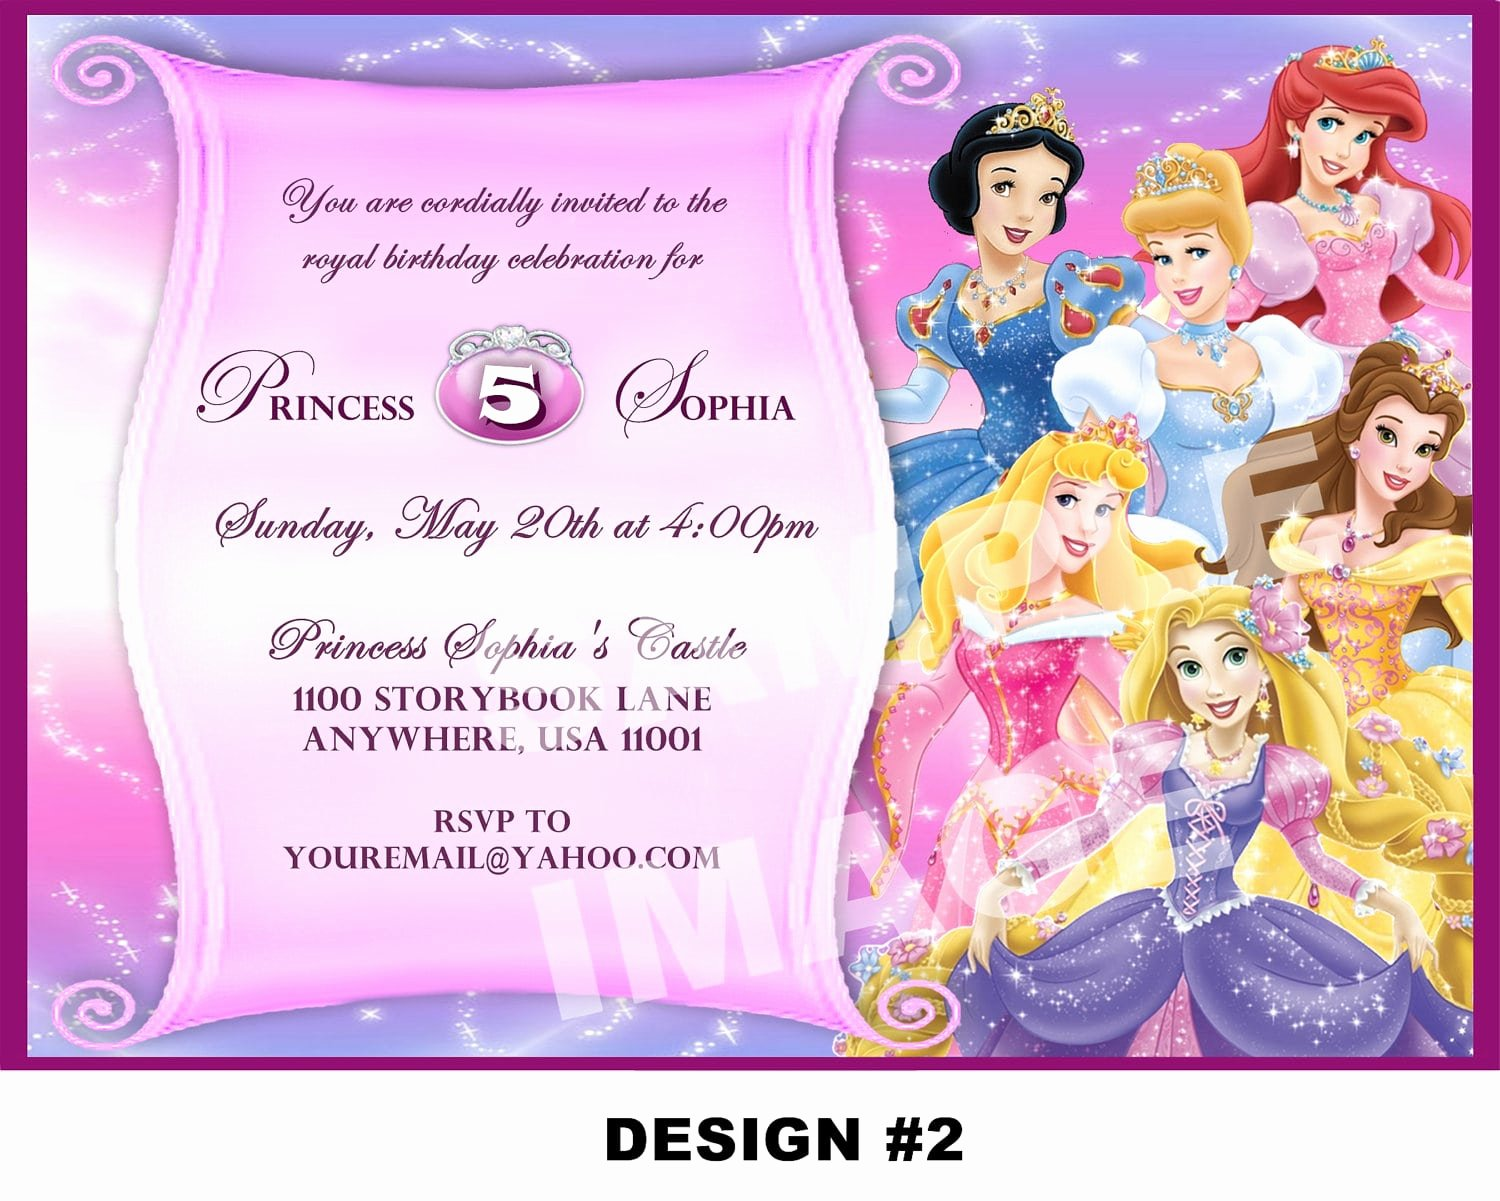 Disney Princess Invitation Template Unique Disney Princess Invitation Card for Birthday Template Free